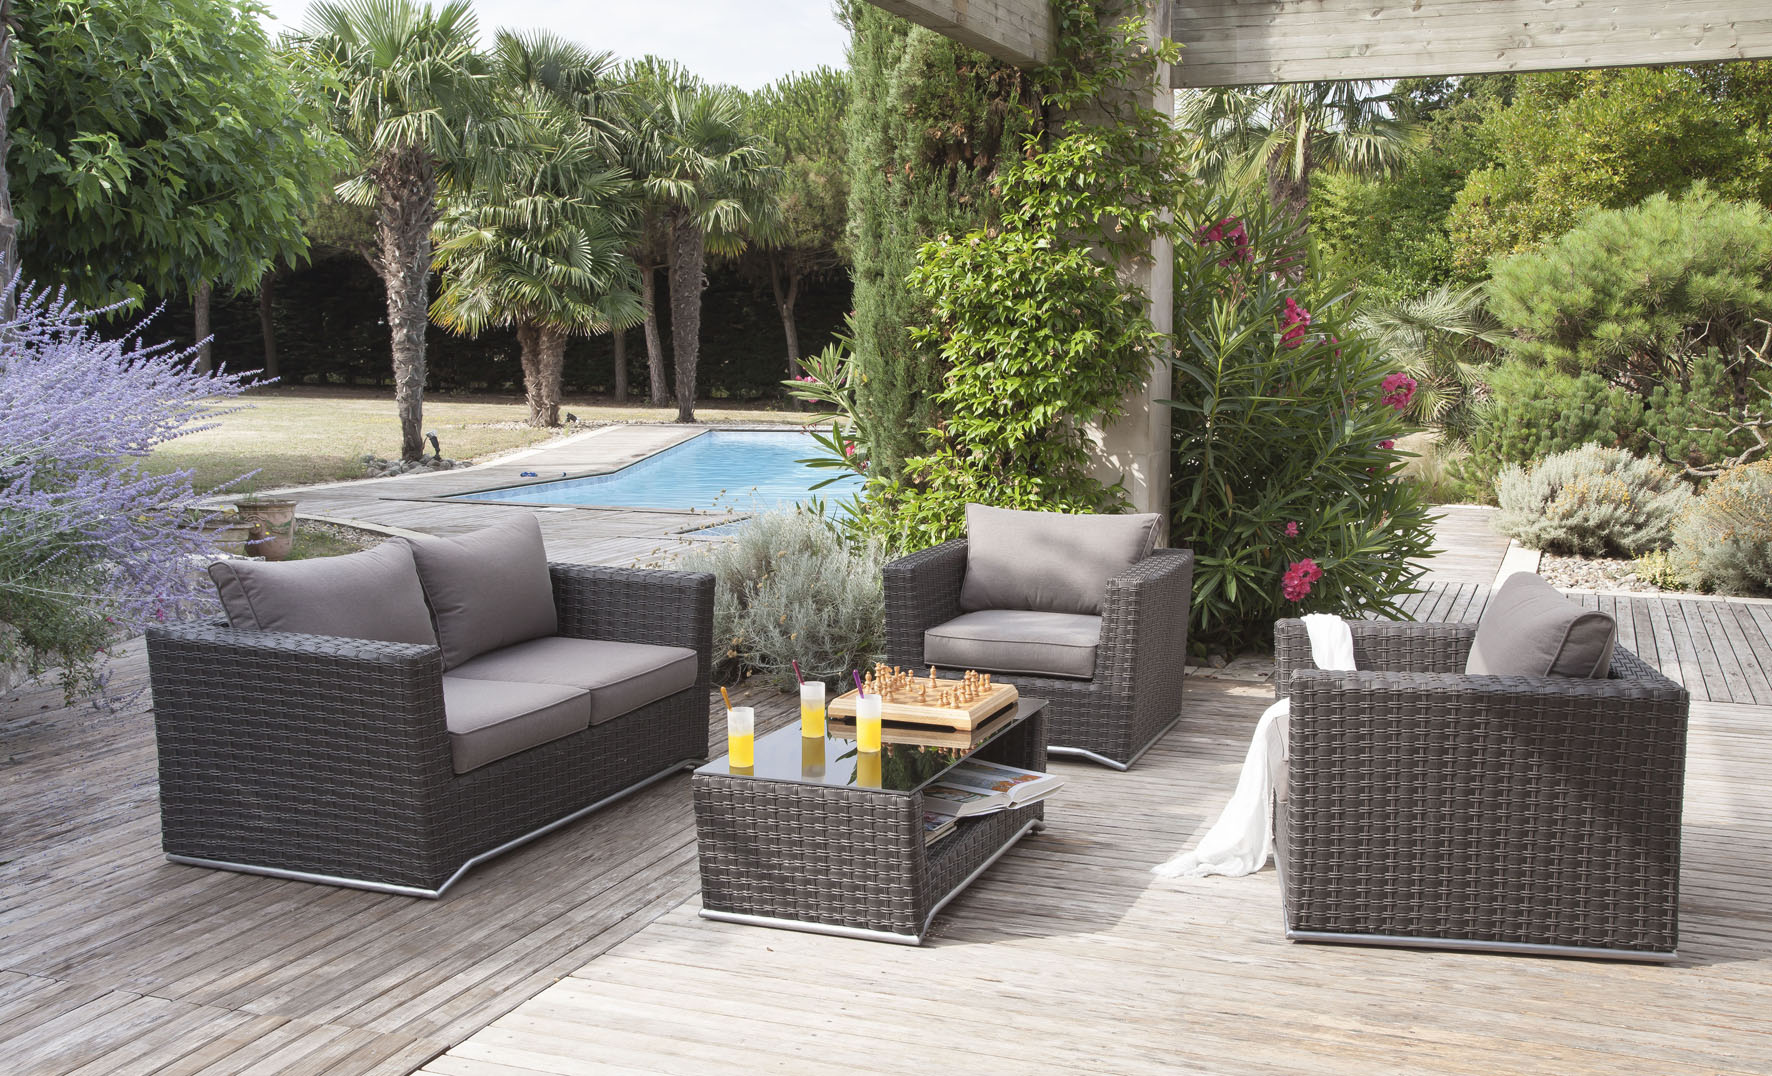 Outdoor la nouvelle collection proloisirs jacky la for Solde meuble salon